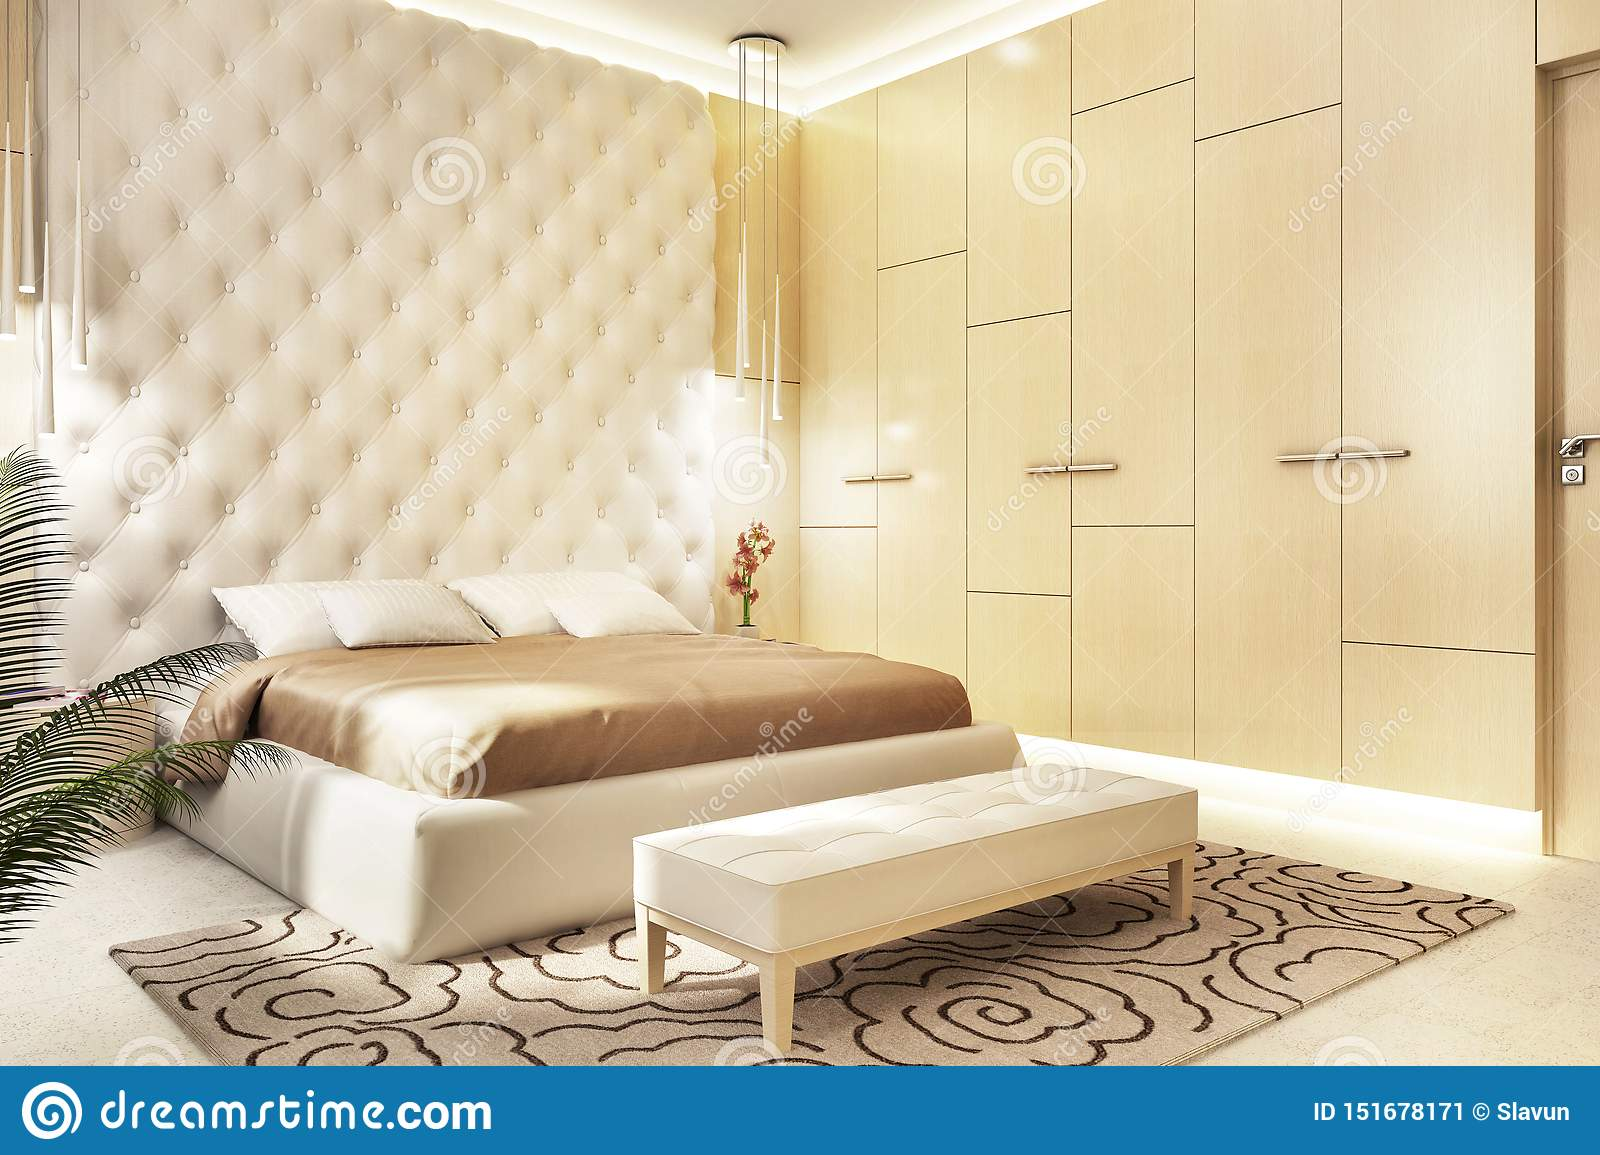 Modern Bedroom Design With Wardrobe Stock Image Image Of Door Headboard 151678171